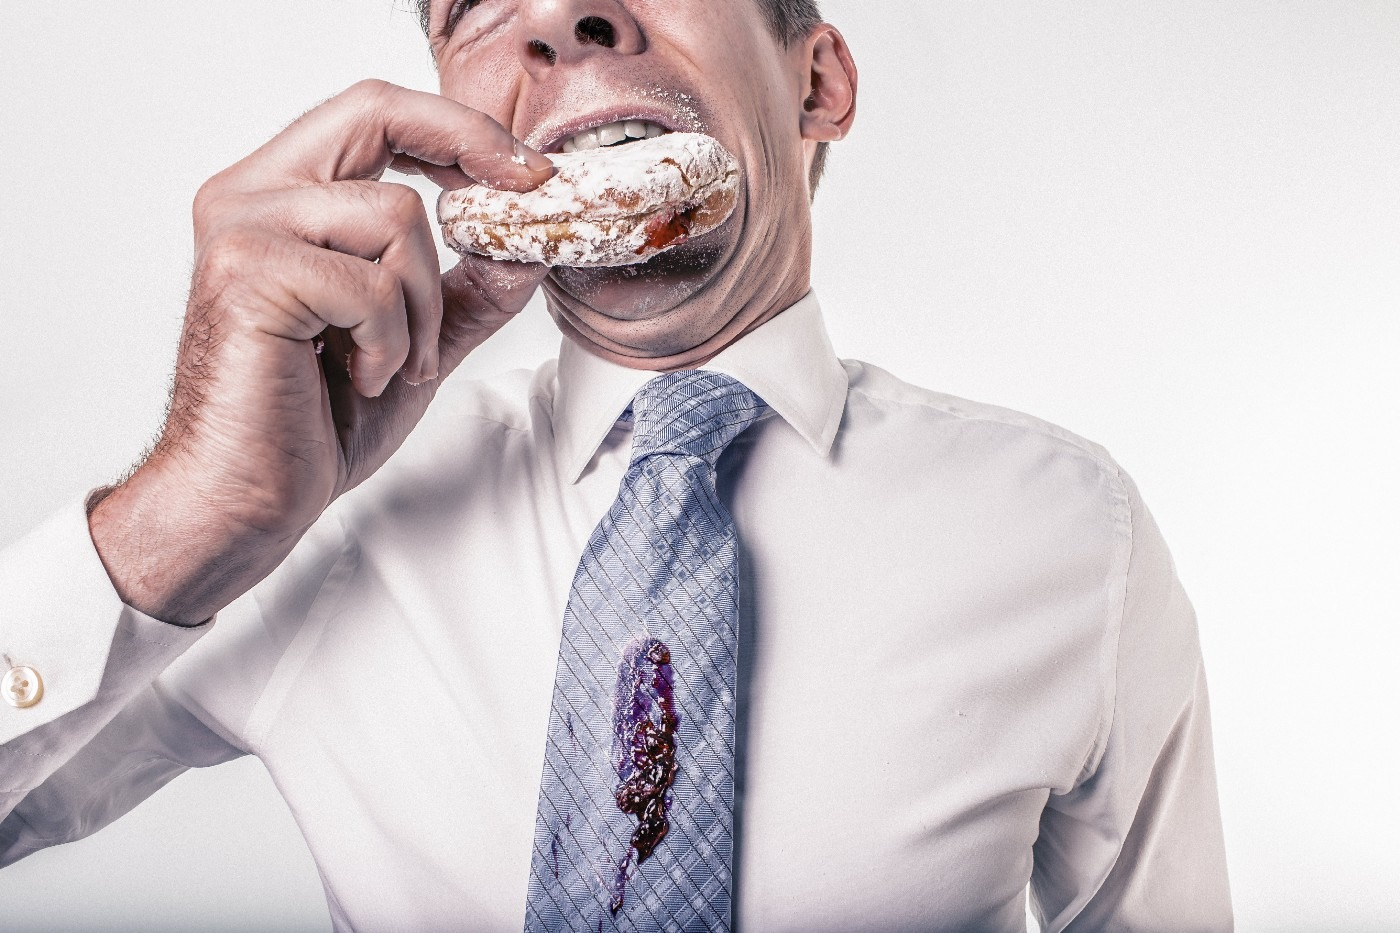 A business man eating a donut spills jam on his tie